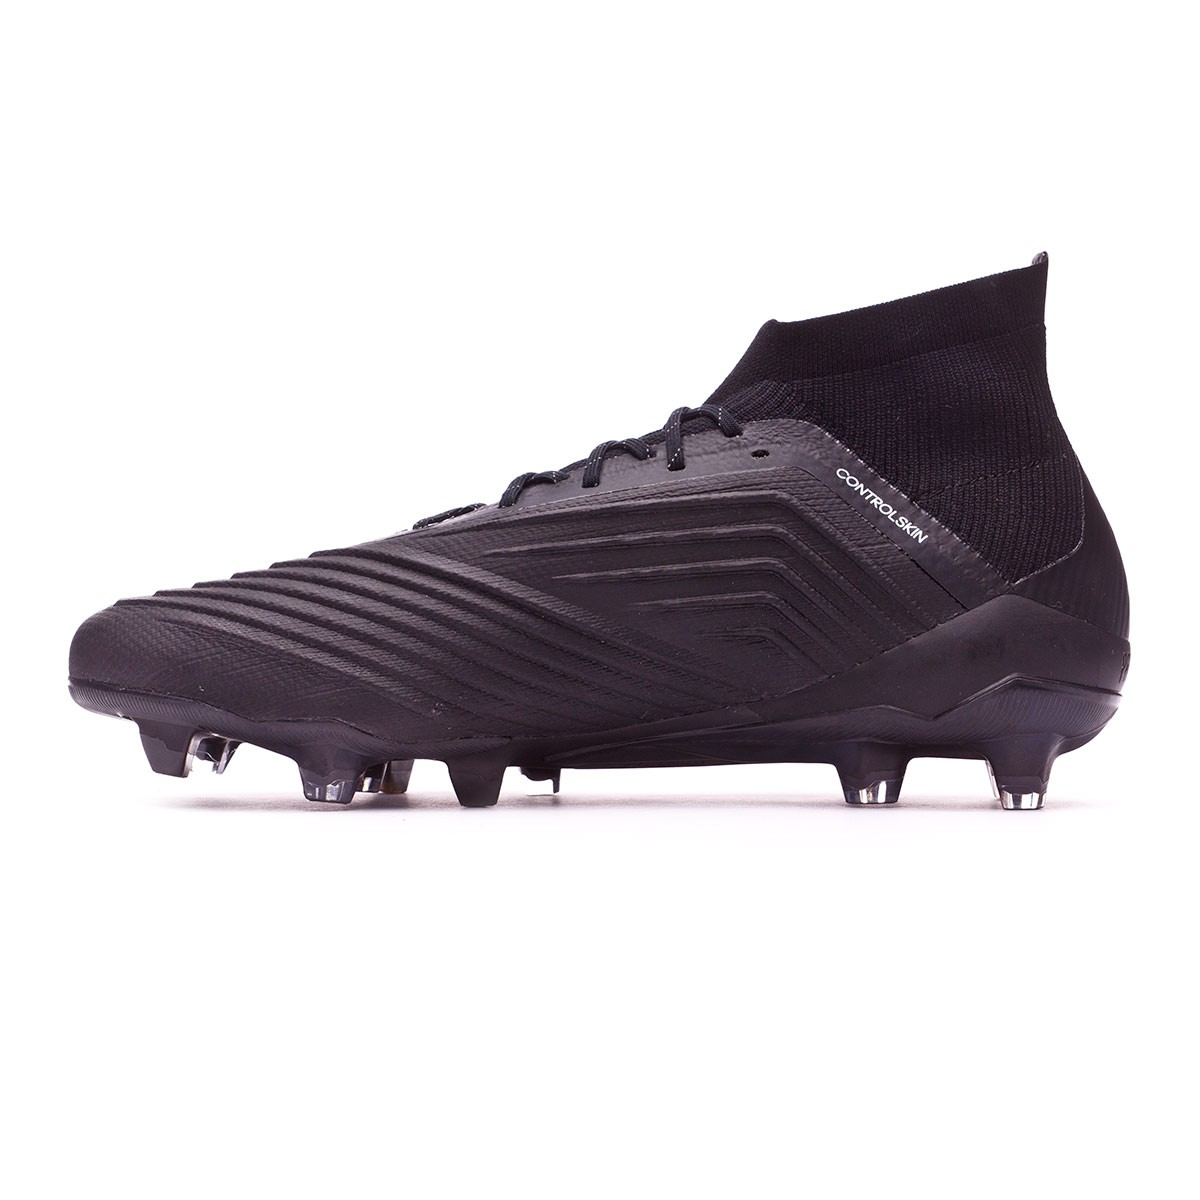 segundo Murmullo Presentador  Football Boots adidas Predator 18.1 FG Core black-White - Football store  Fútbol Emotion